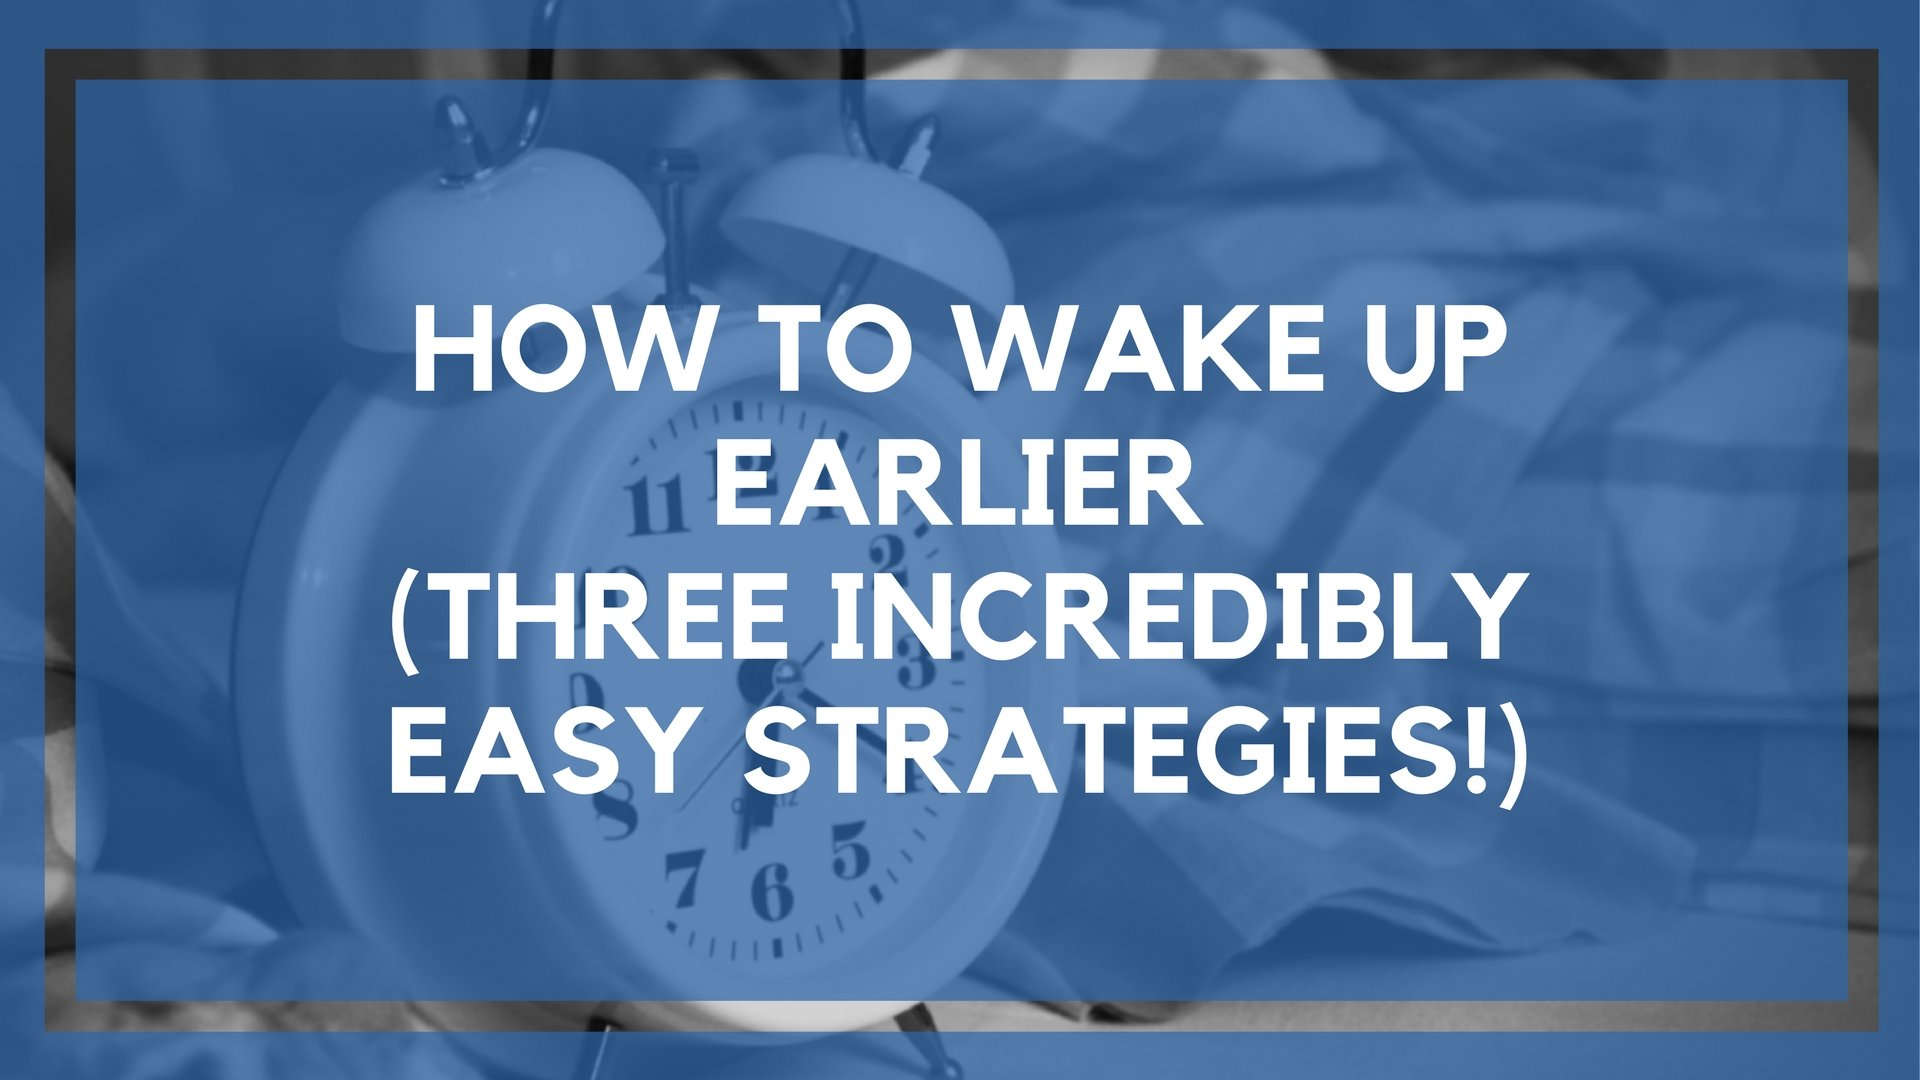 How to Wake Up Earlier (3 No Brainer Tactics)